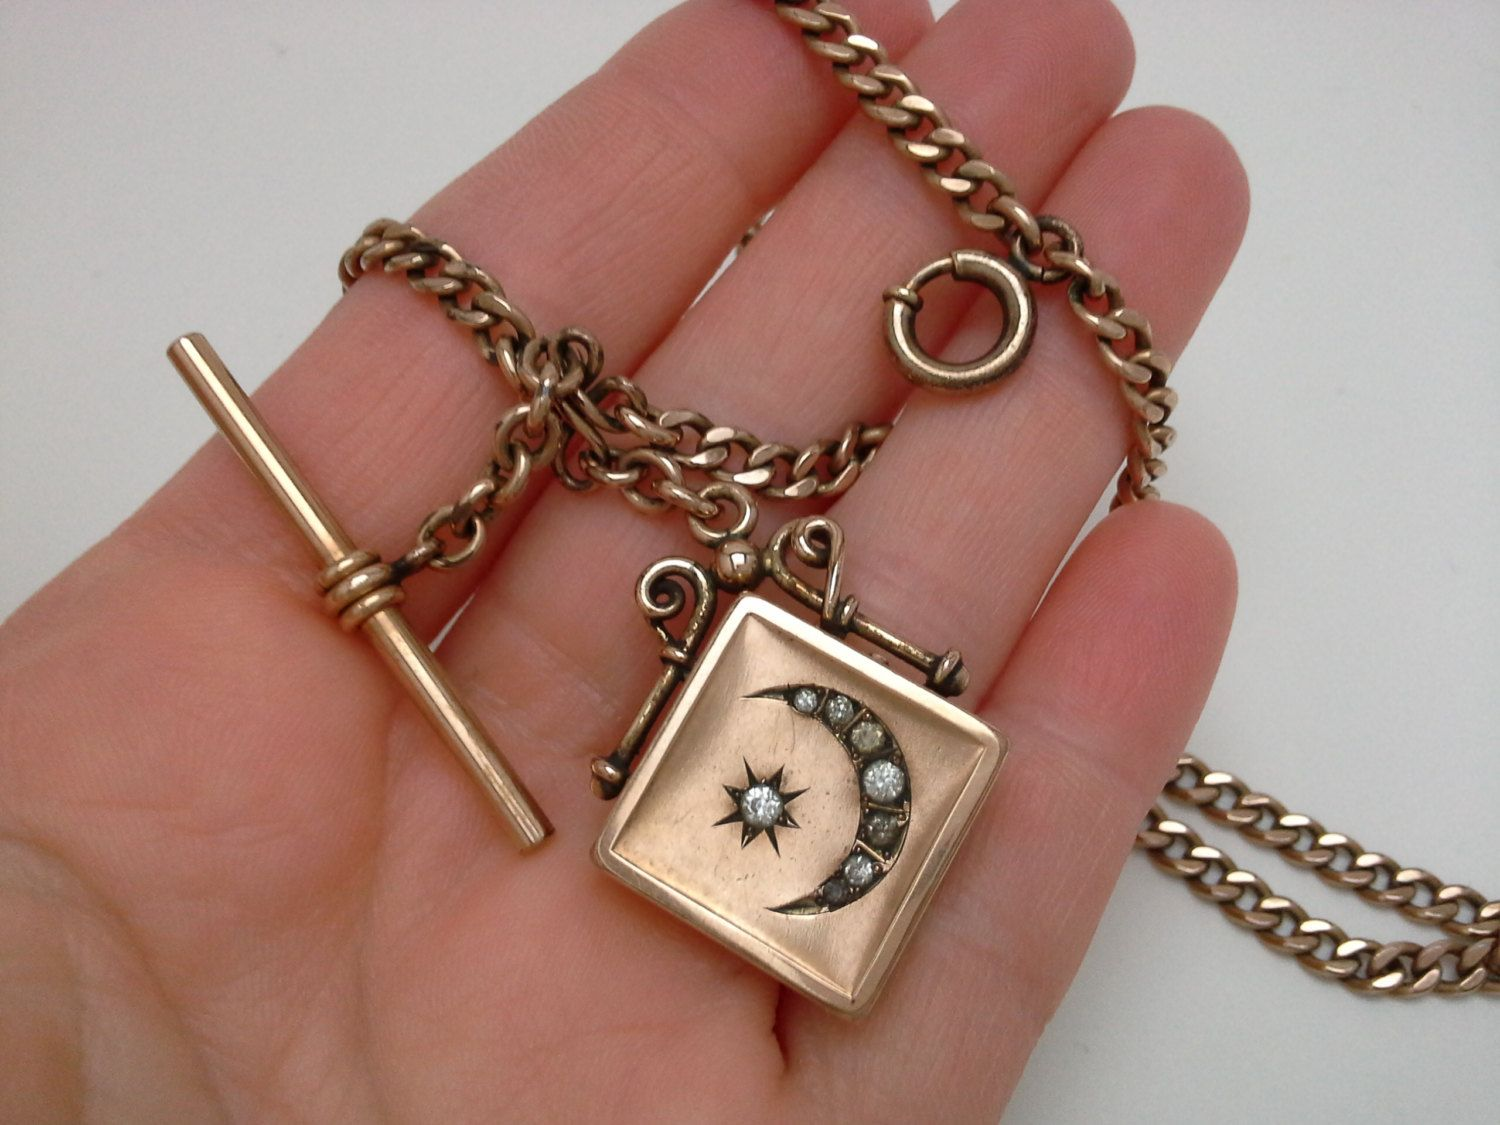 watches love watch guardian bronze quartz necklace lockets vintage shop i locket angel